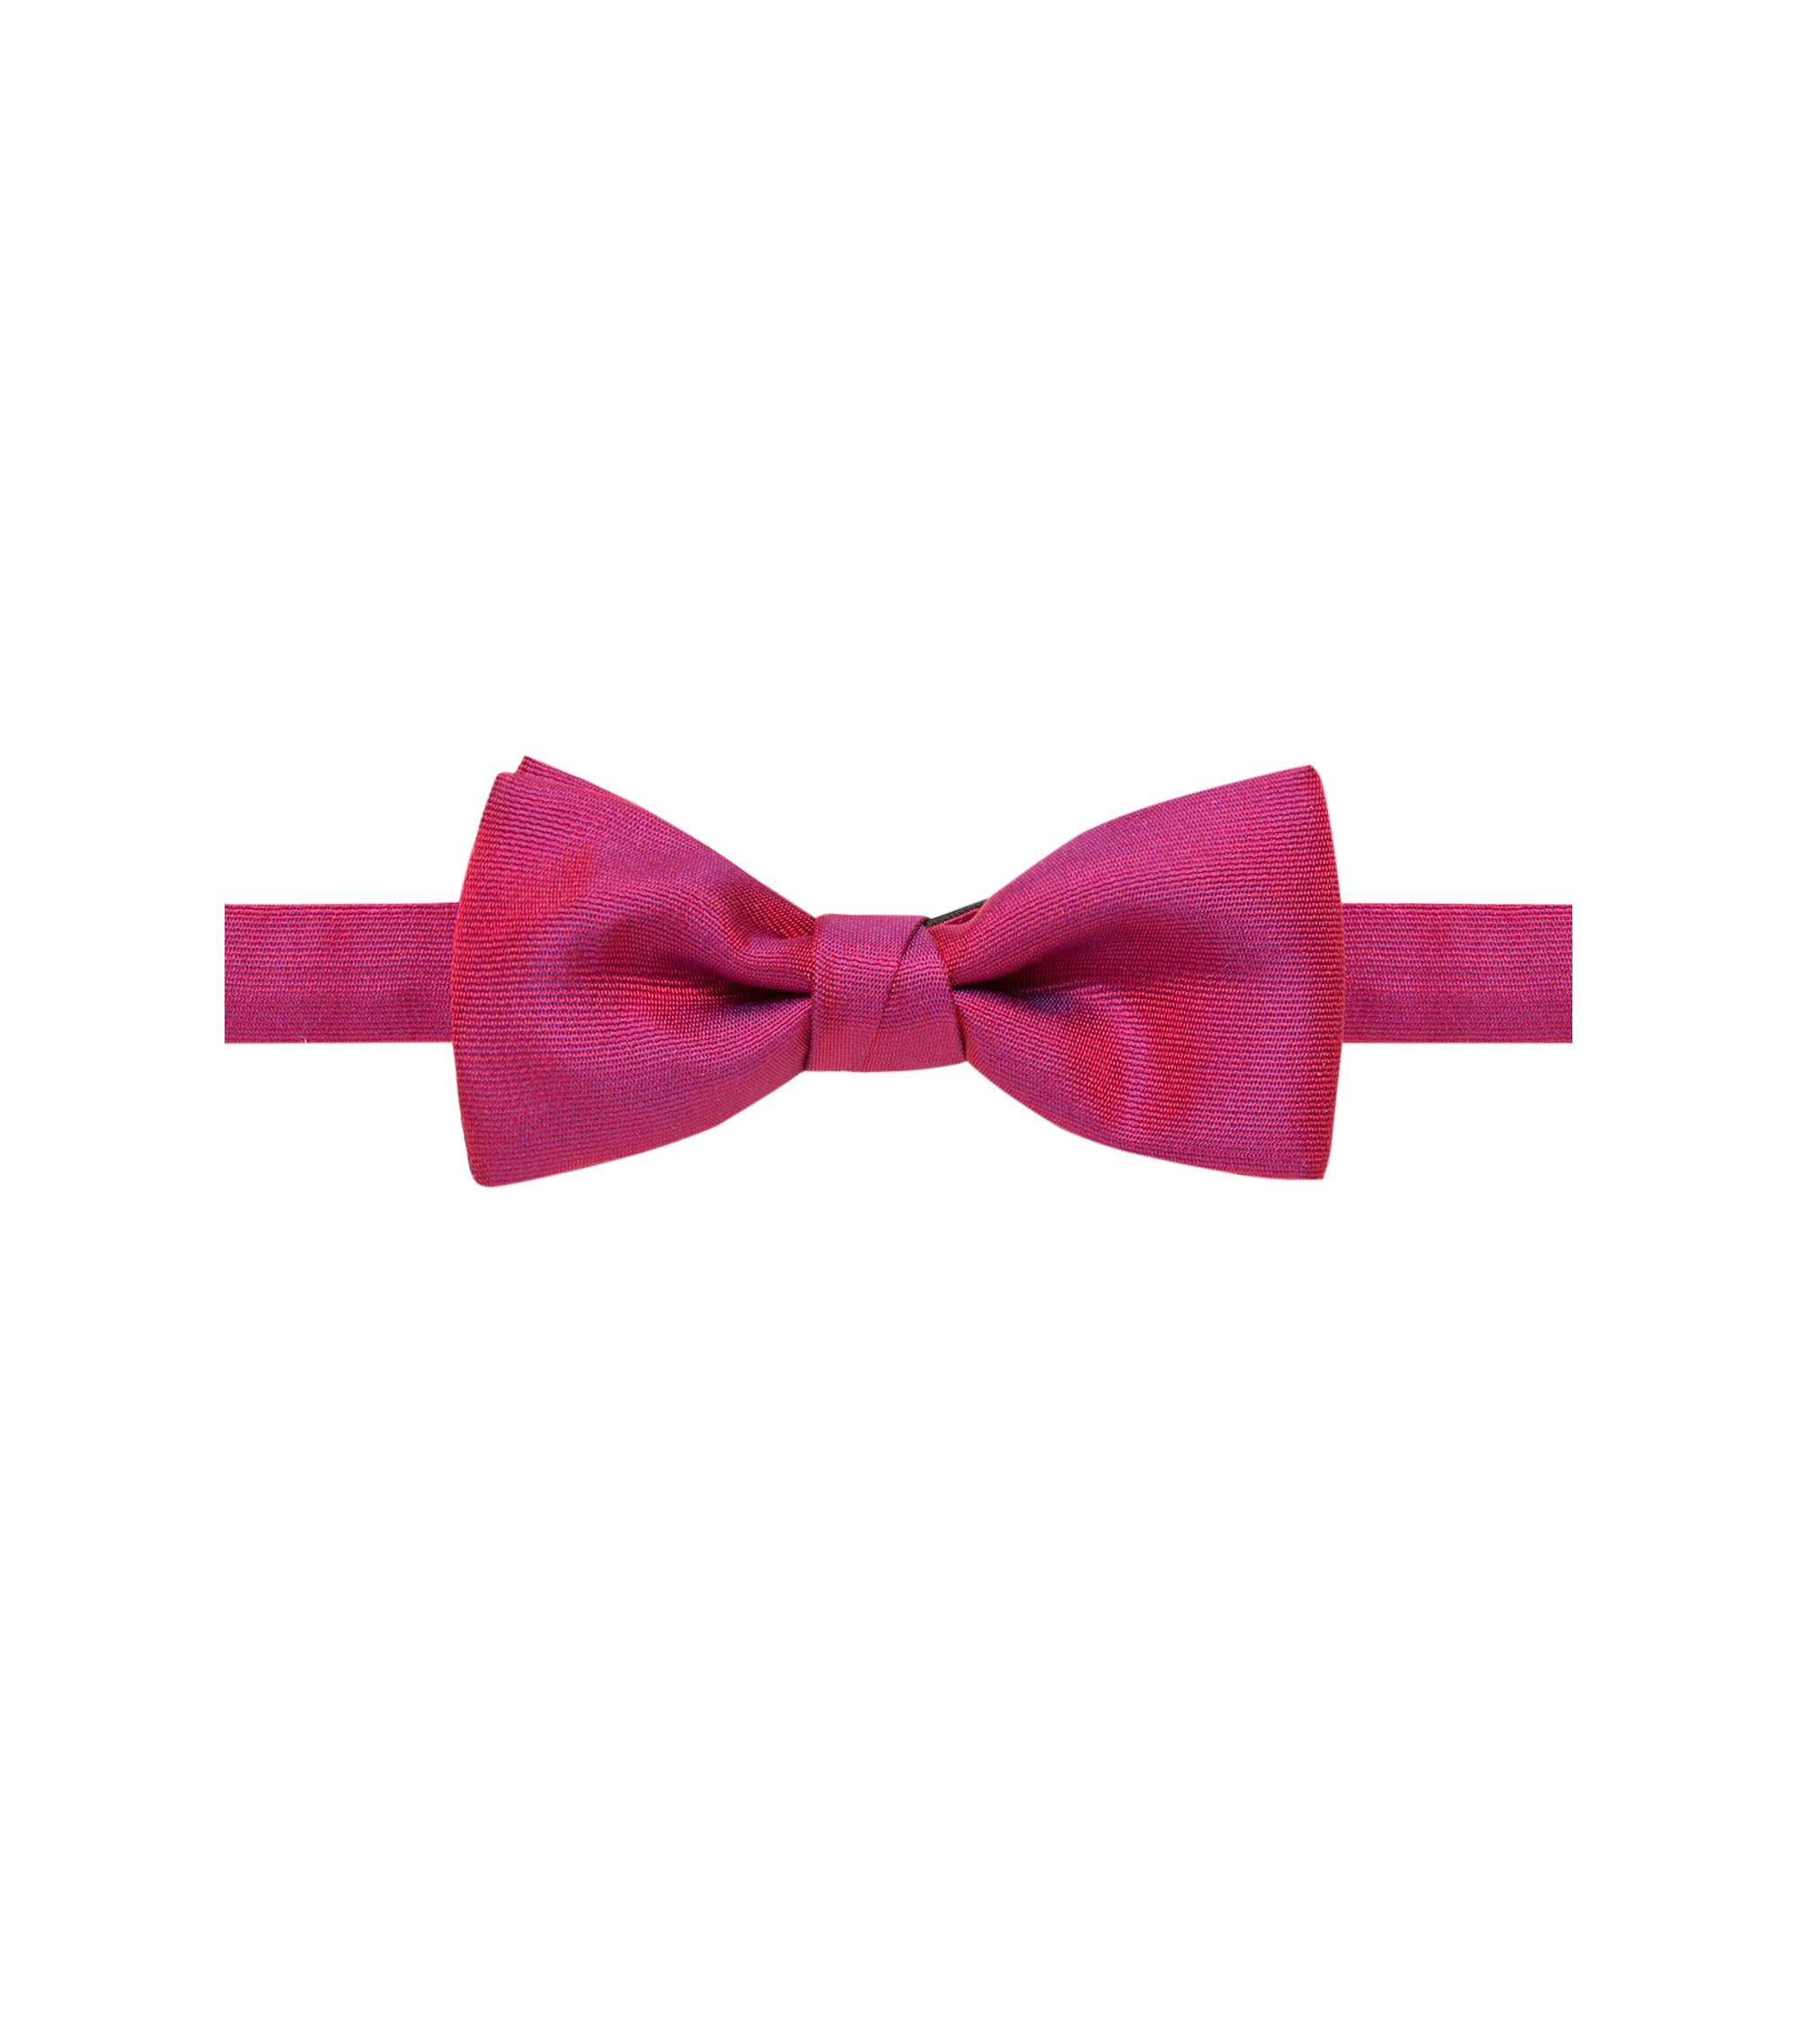 Silk-blend bow tie in a textured weave, Red